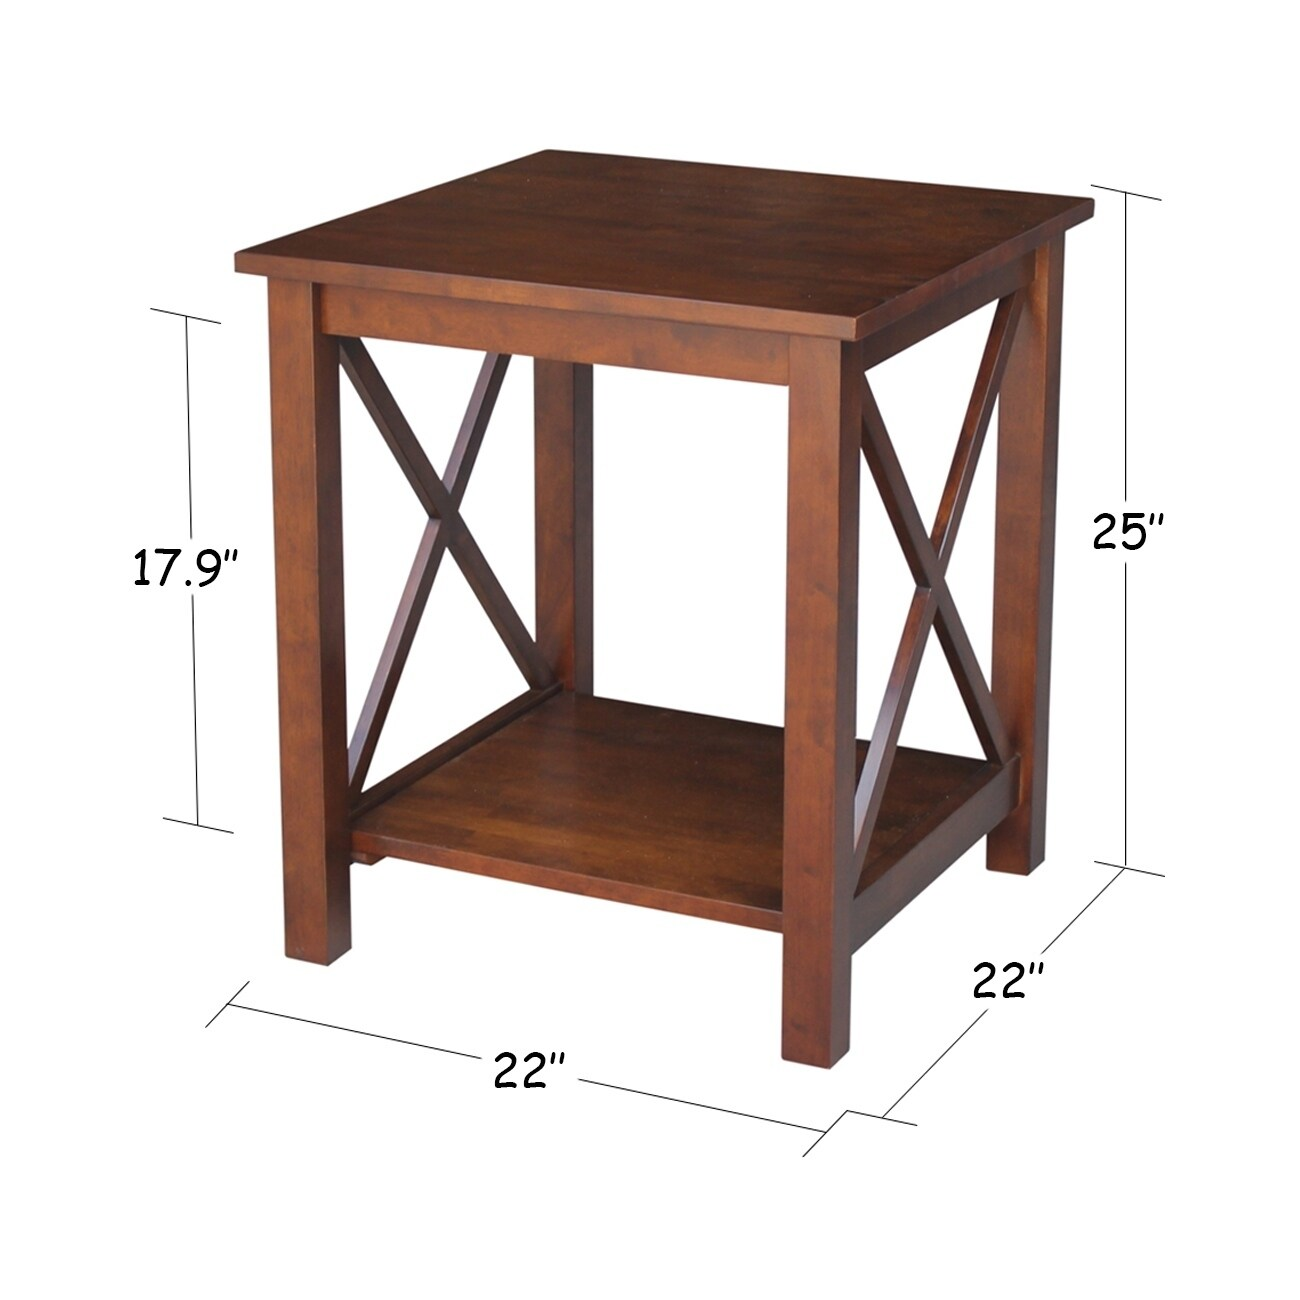 hampton espresso wood end table free shipping today tables glass dining black legs marble and silver coffee rustic nest broyhill furniture wagon wheel gloss corner simple dog